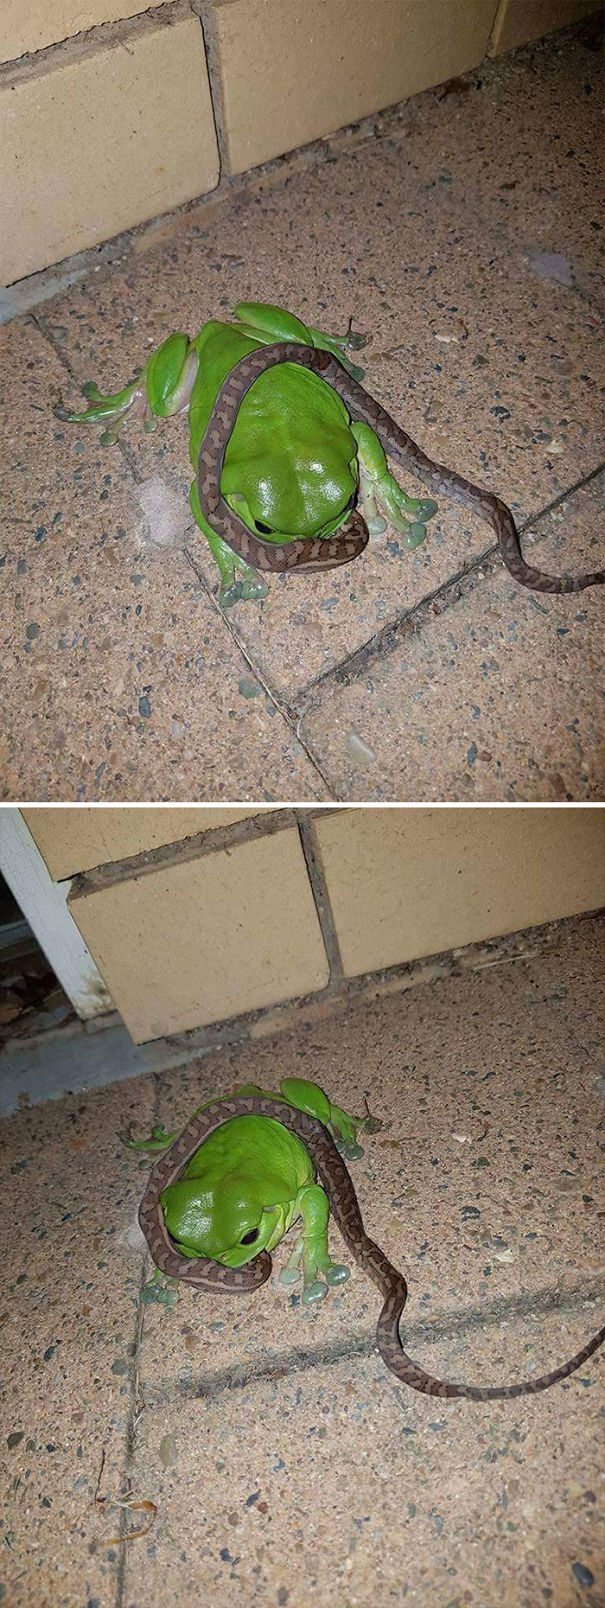 You Know You're In Australia When Frogs Eat Snakes